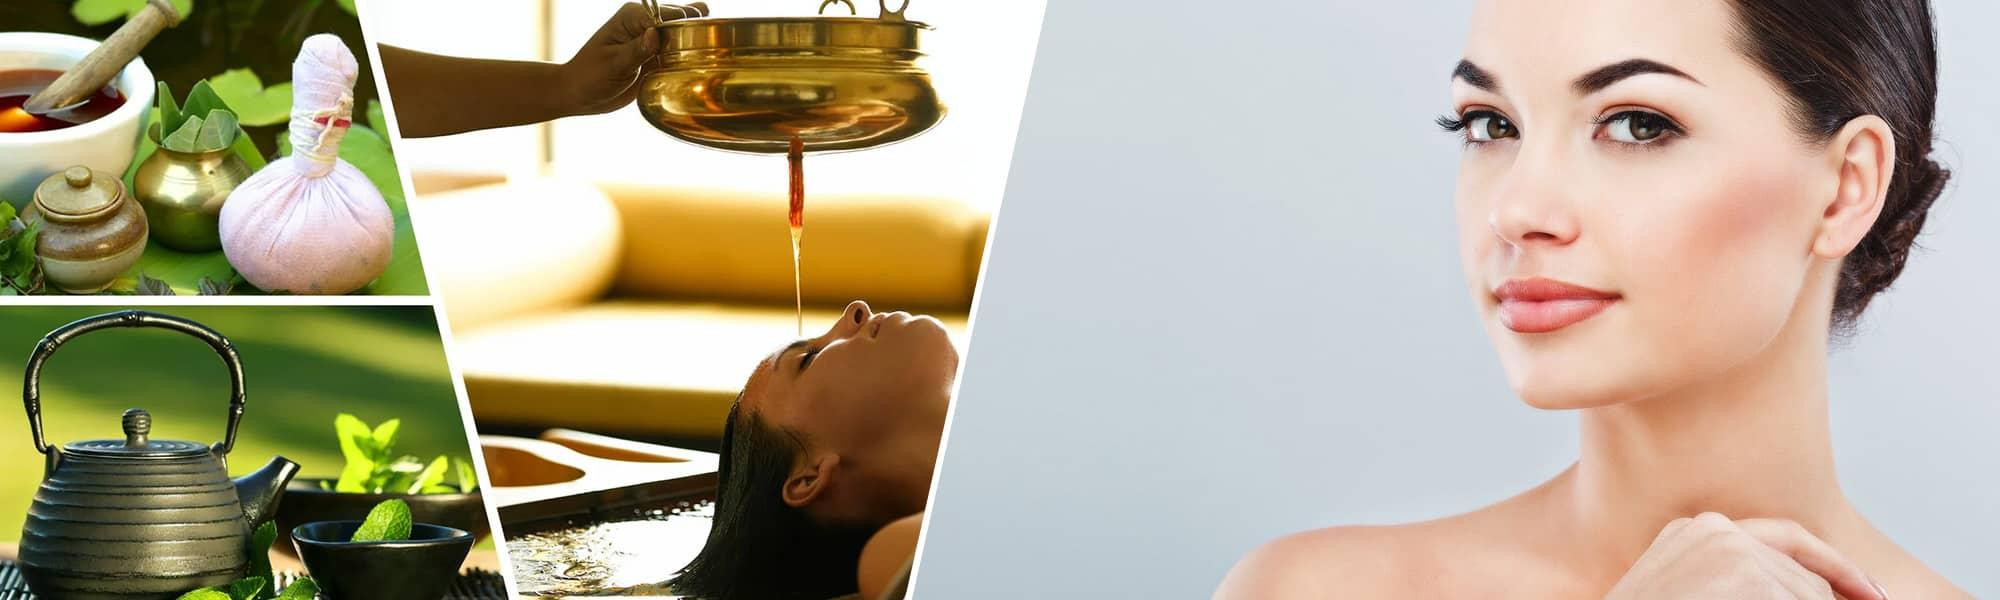 Skin Care And Beauty Care For Anti Aging Ayurveda Tour Packages